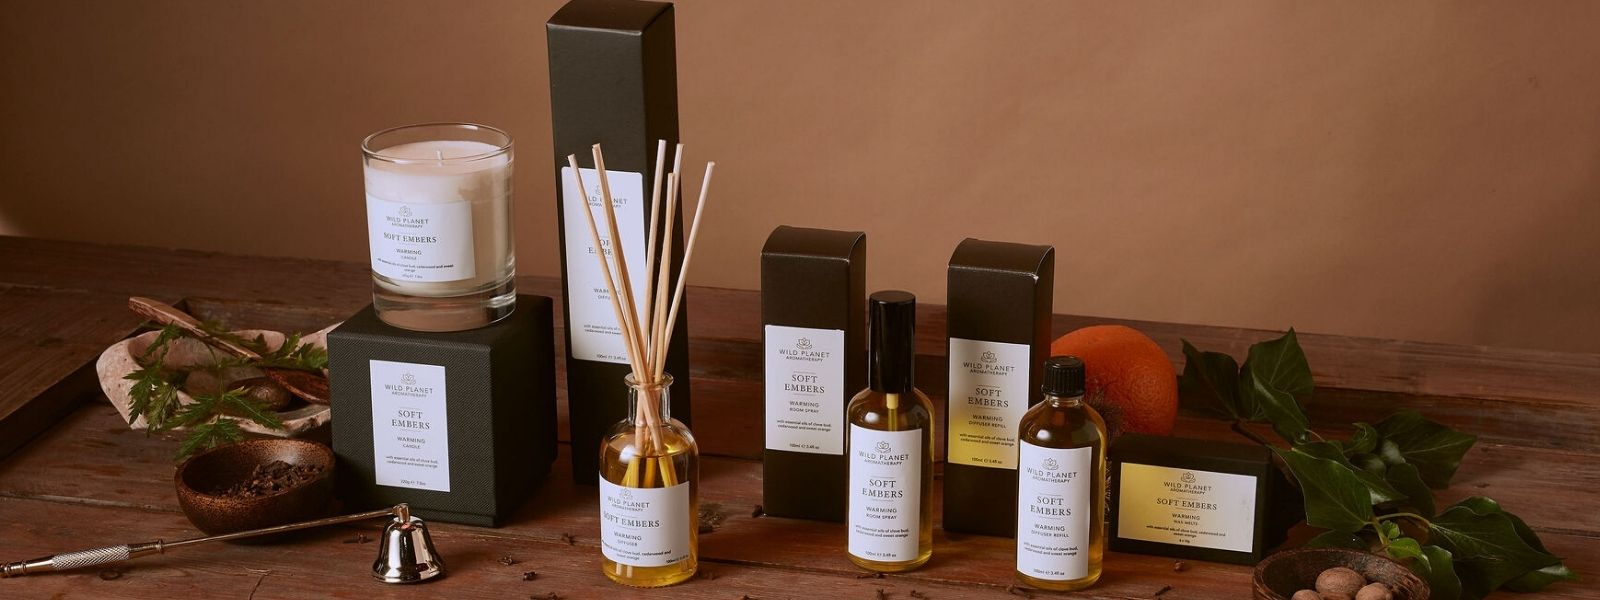 Soft Embers candle, reed diffuser, room spray and wax melts by Wild Planet Aromatherapy on wooden table